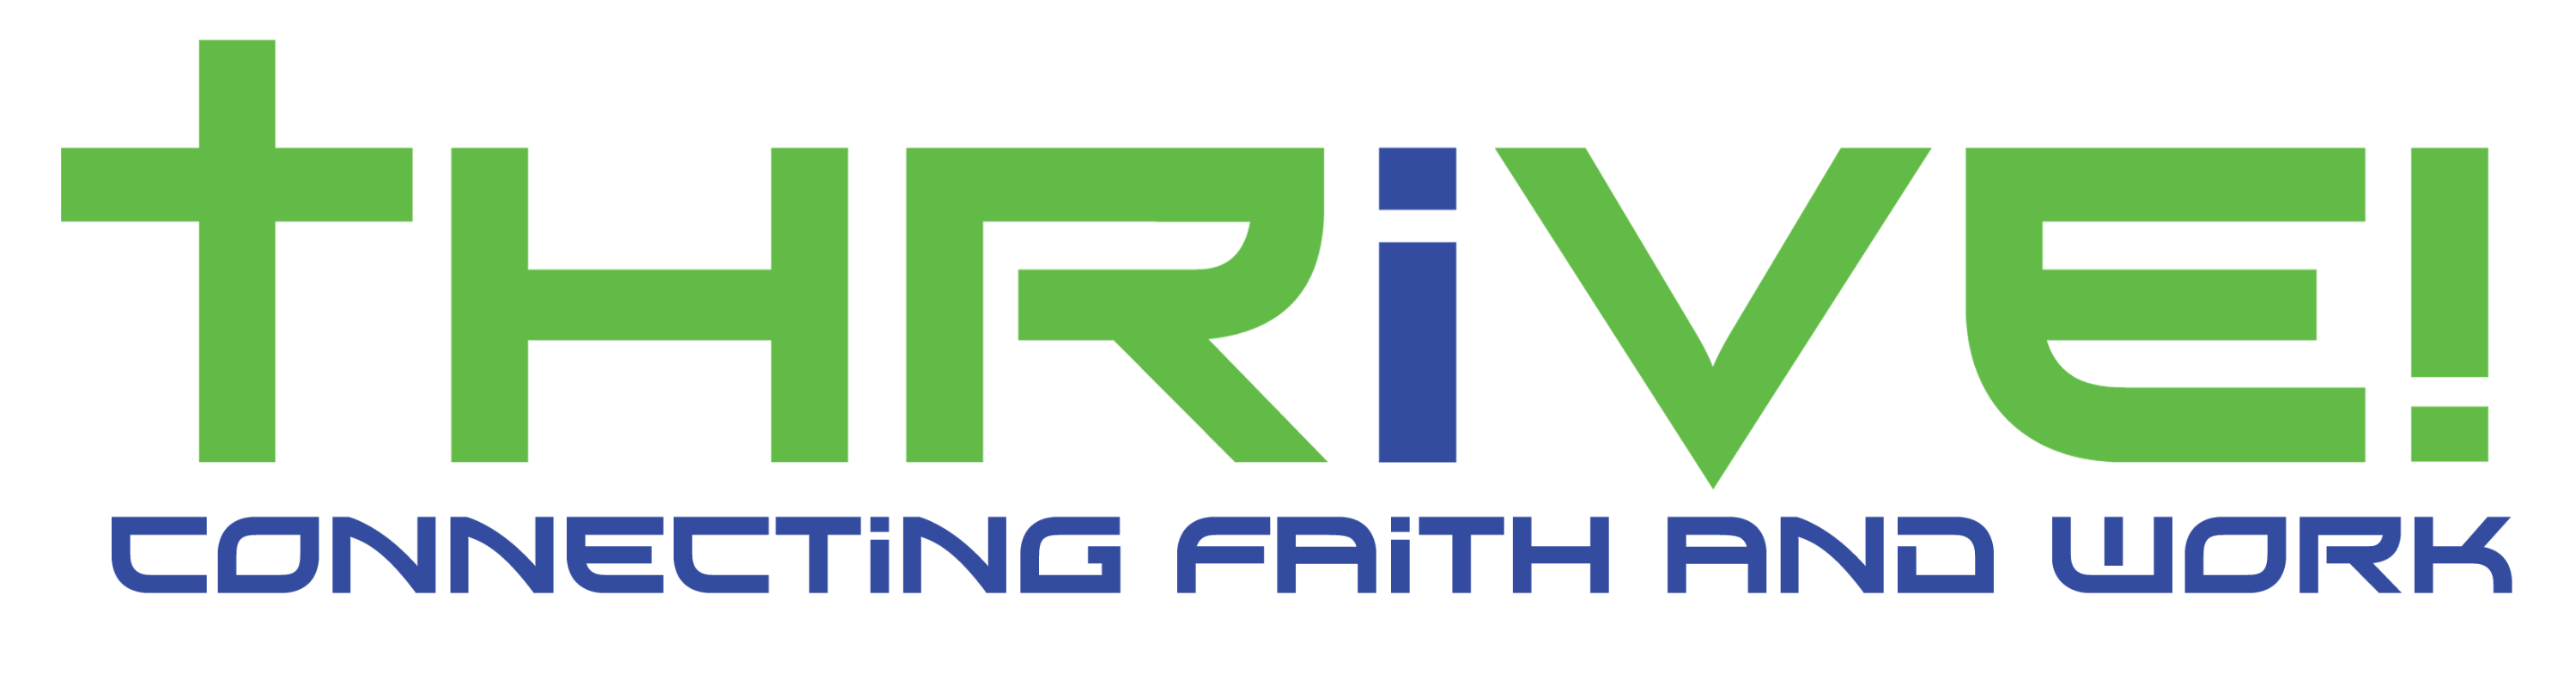 Thrive! St. Louis Park